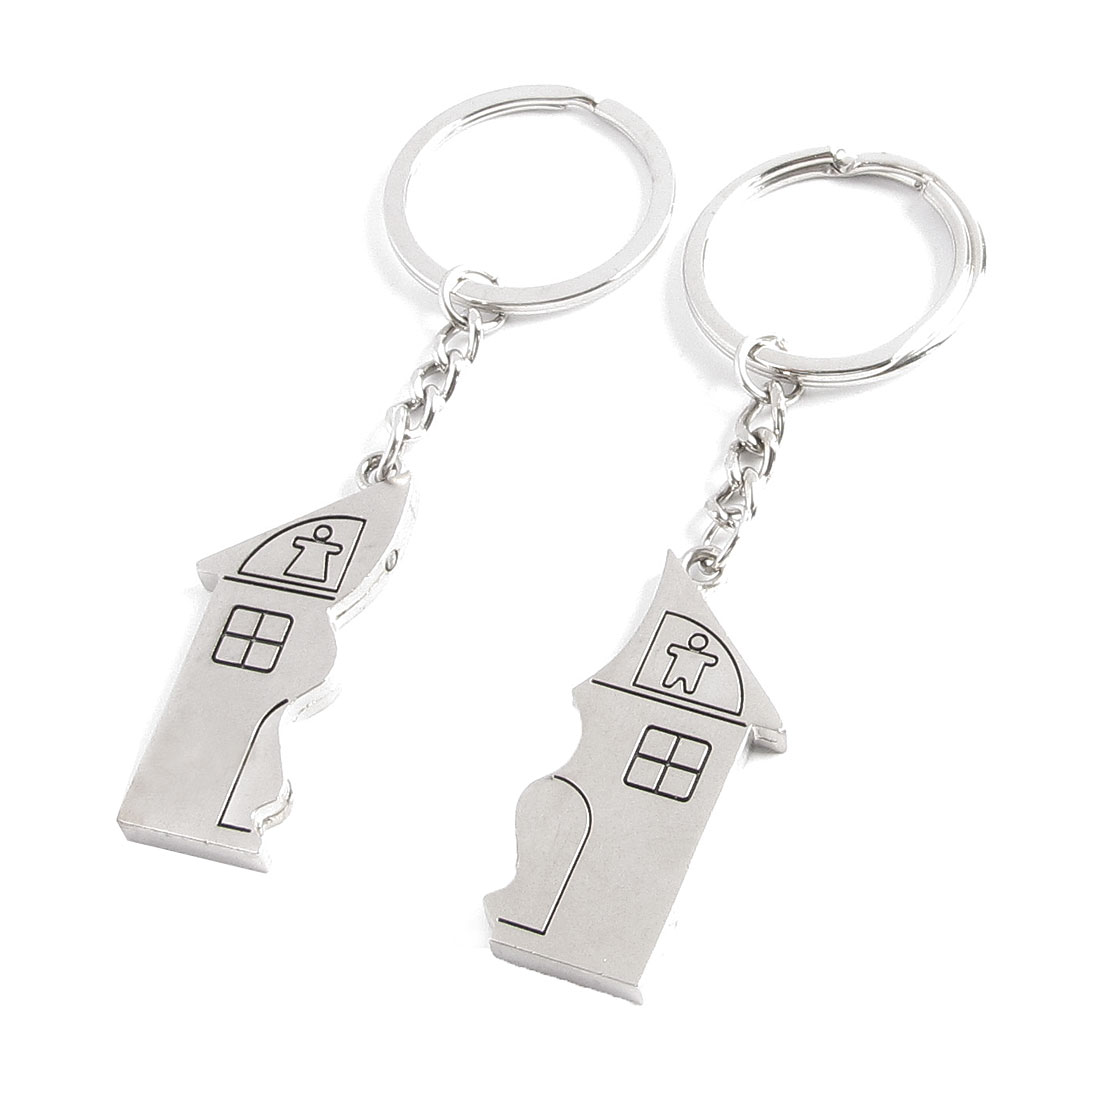 Lovers House Shape Magnetic Pendant Key Ring Chains Holder Silver Tone Pair by